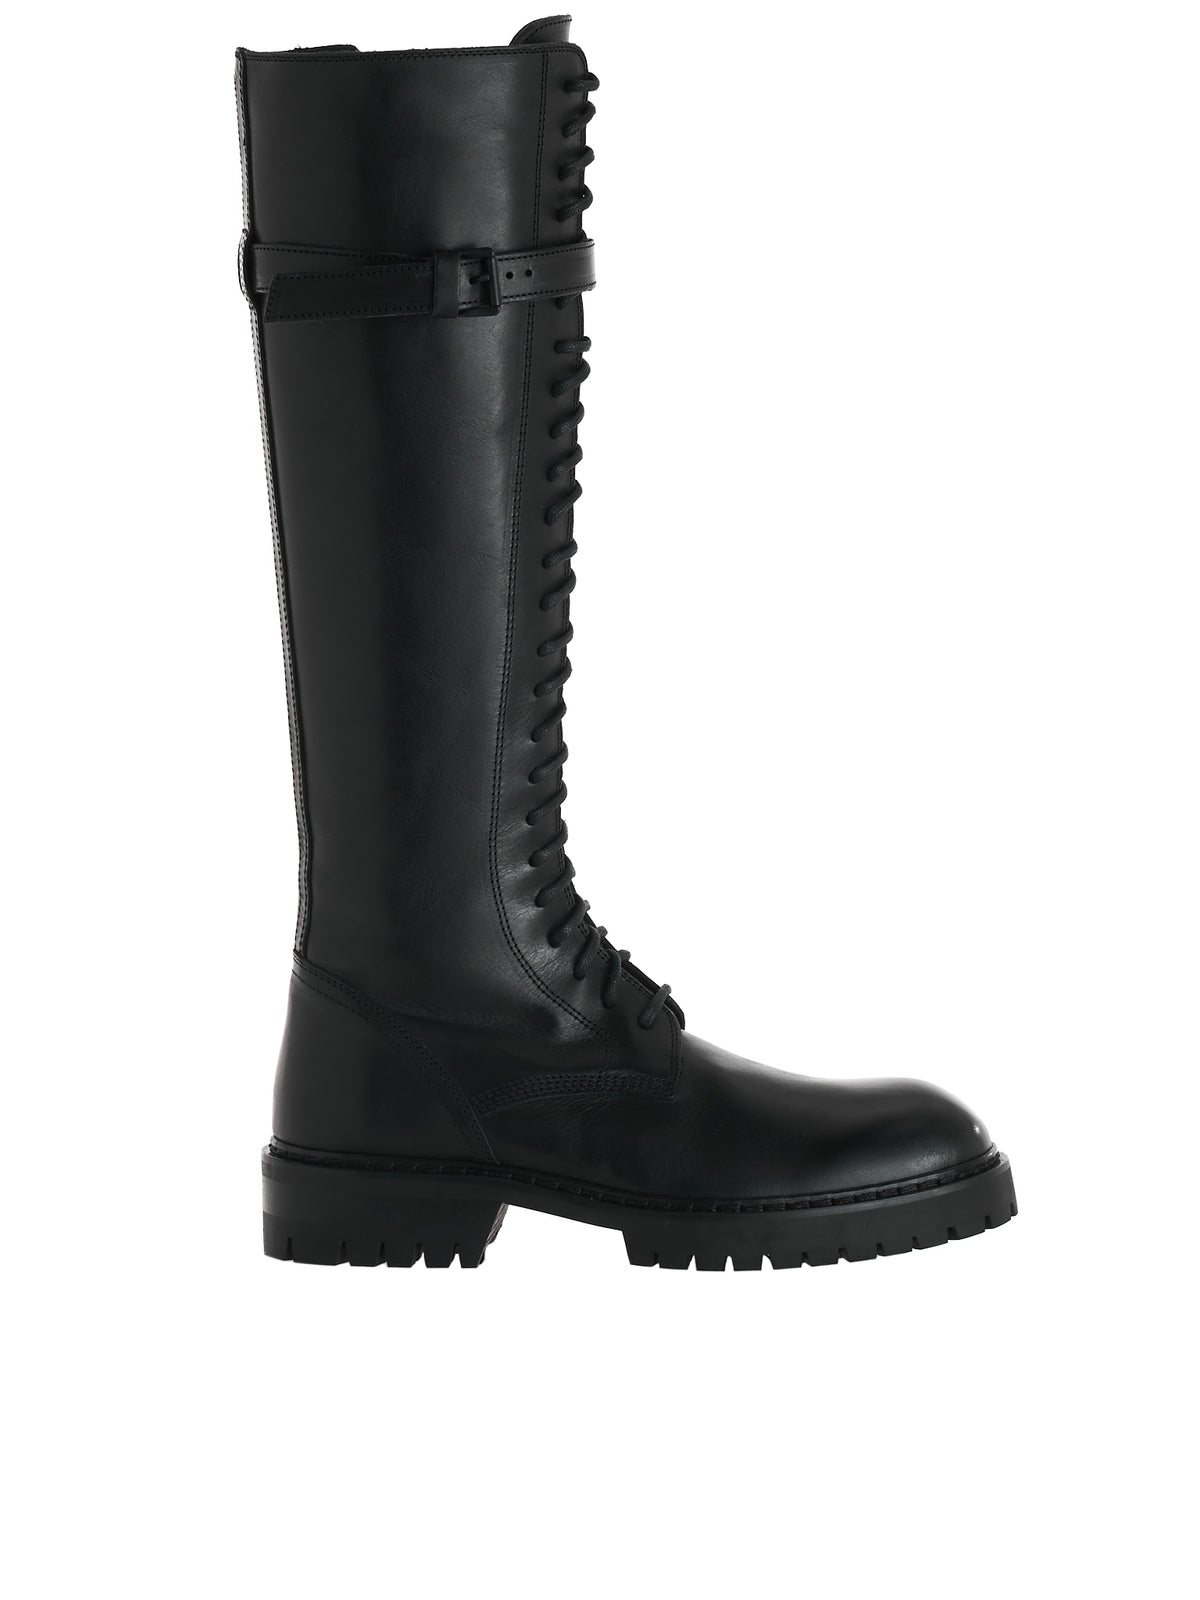 Knee High Boots (2014-2830-390-099-BLACK)